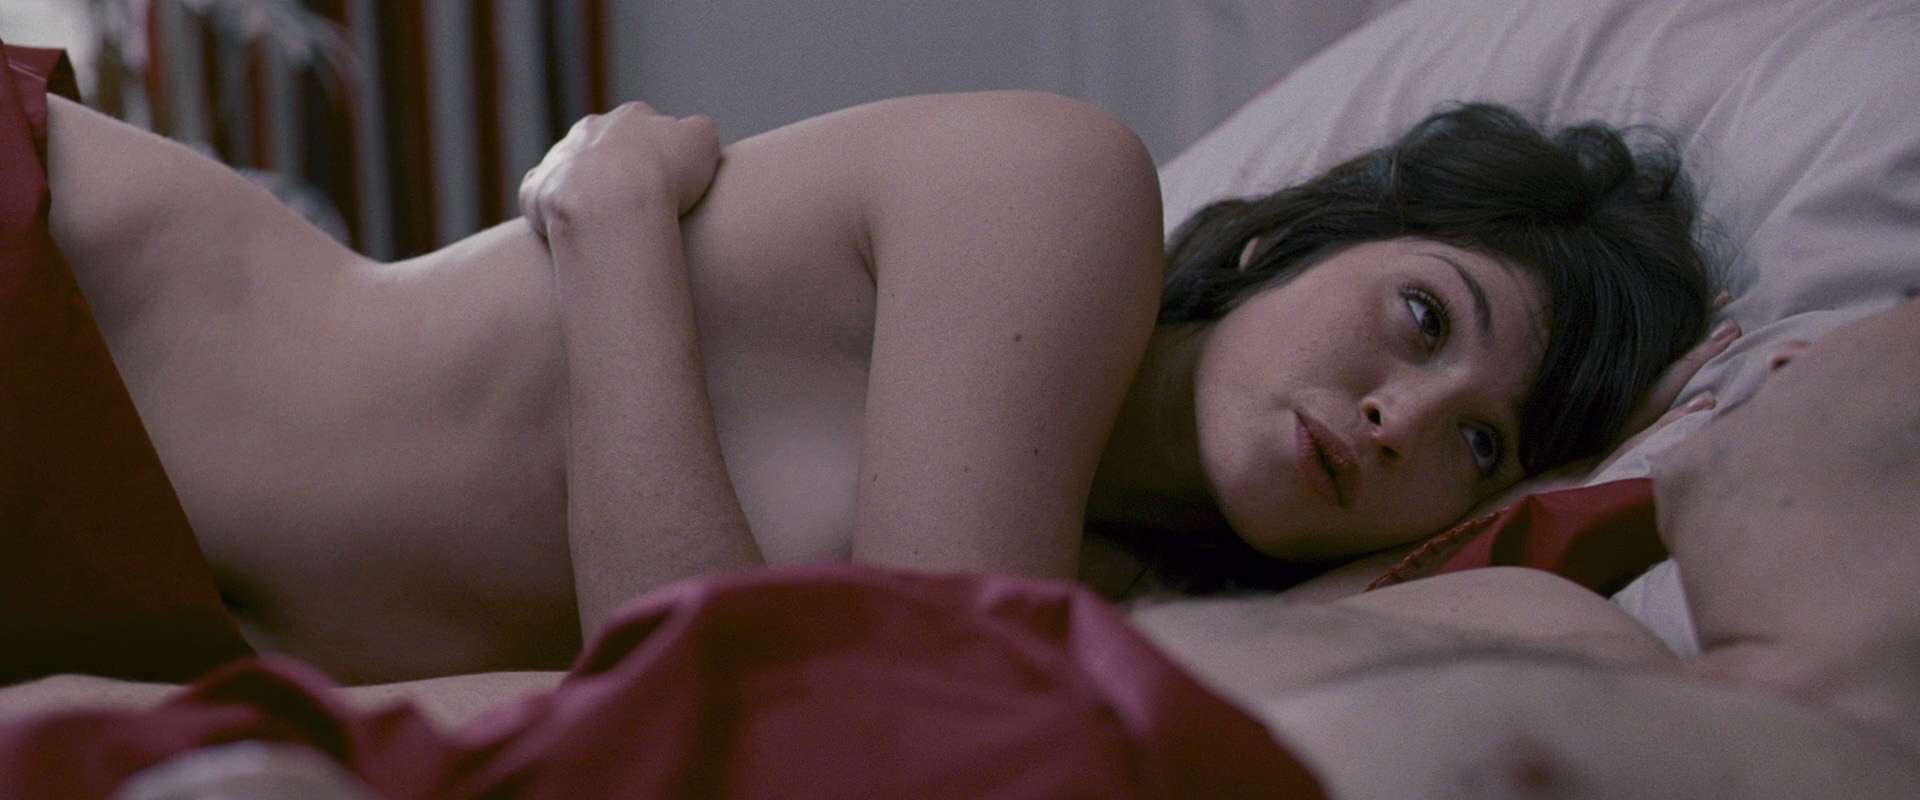 Gemma Arterton Sex Scene watch online - gemma arterton – tamara drewe (2010) hd 1080p